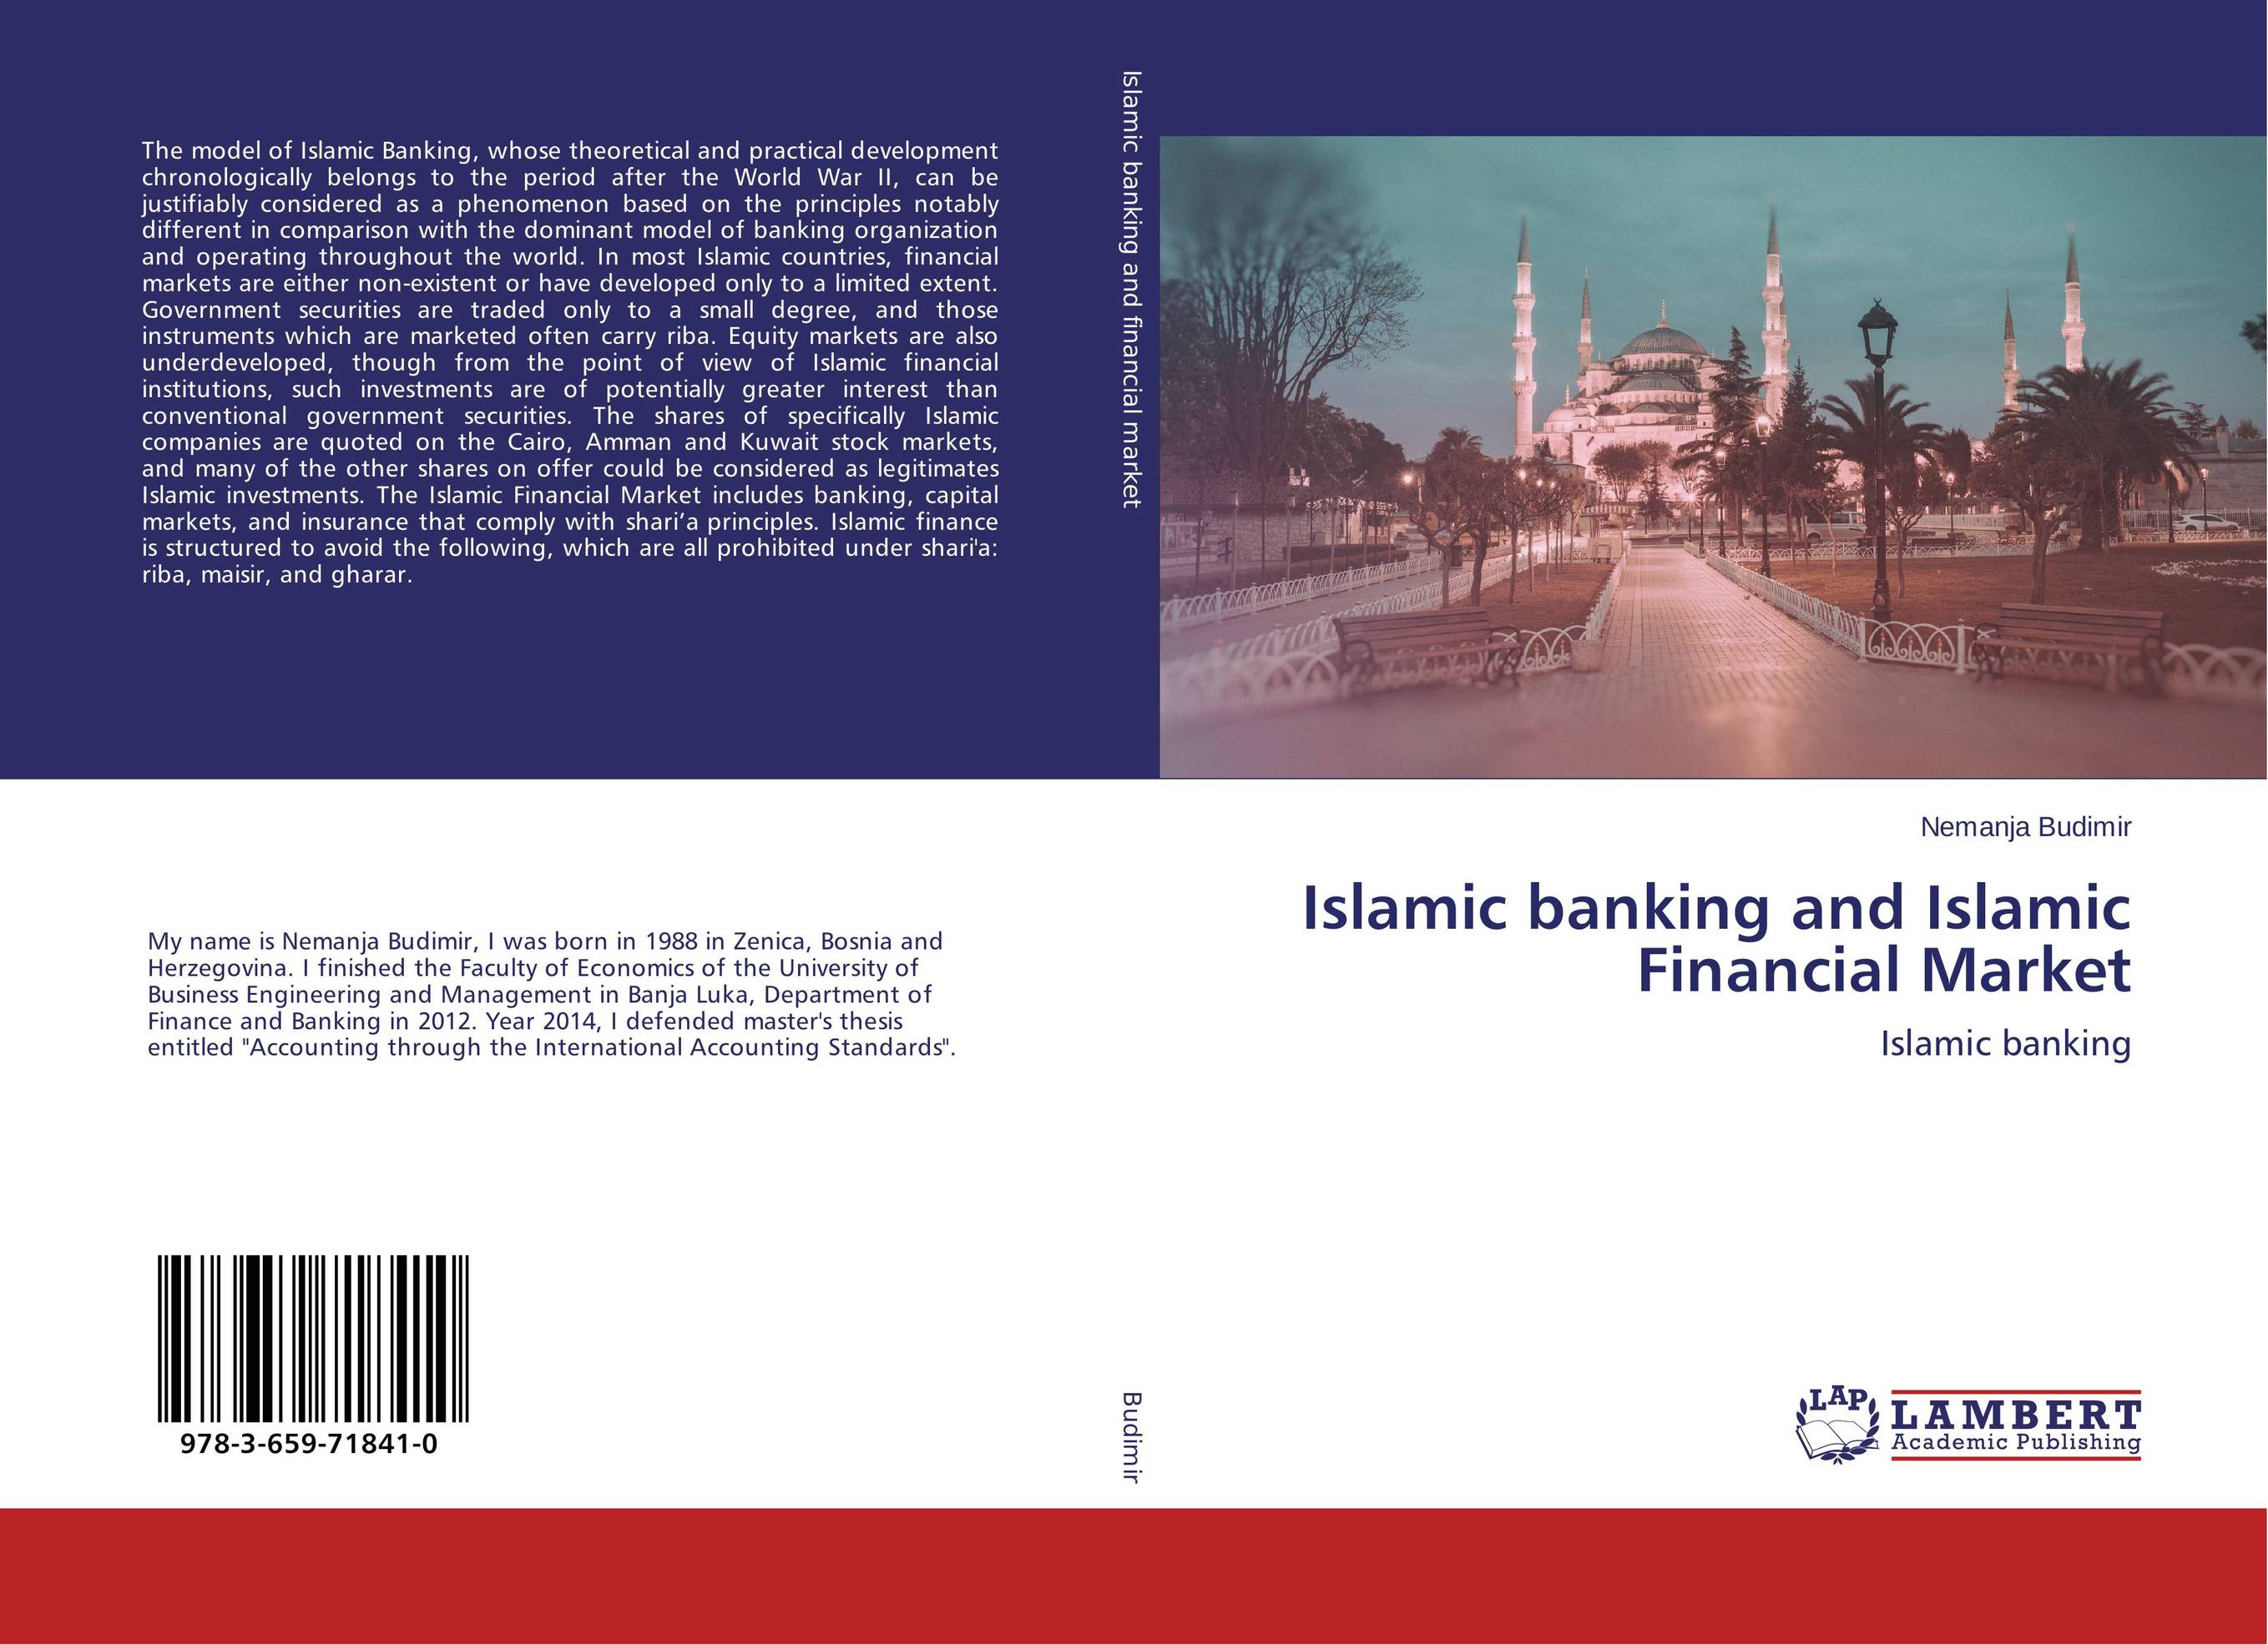 Islamic banking and Islamic Financial Market textiles of the islamic world